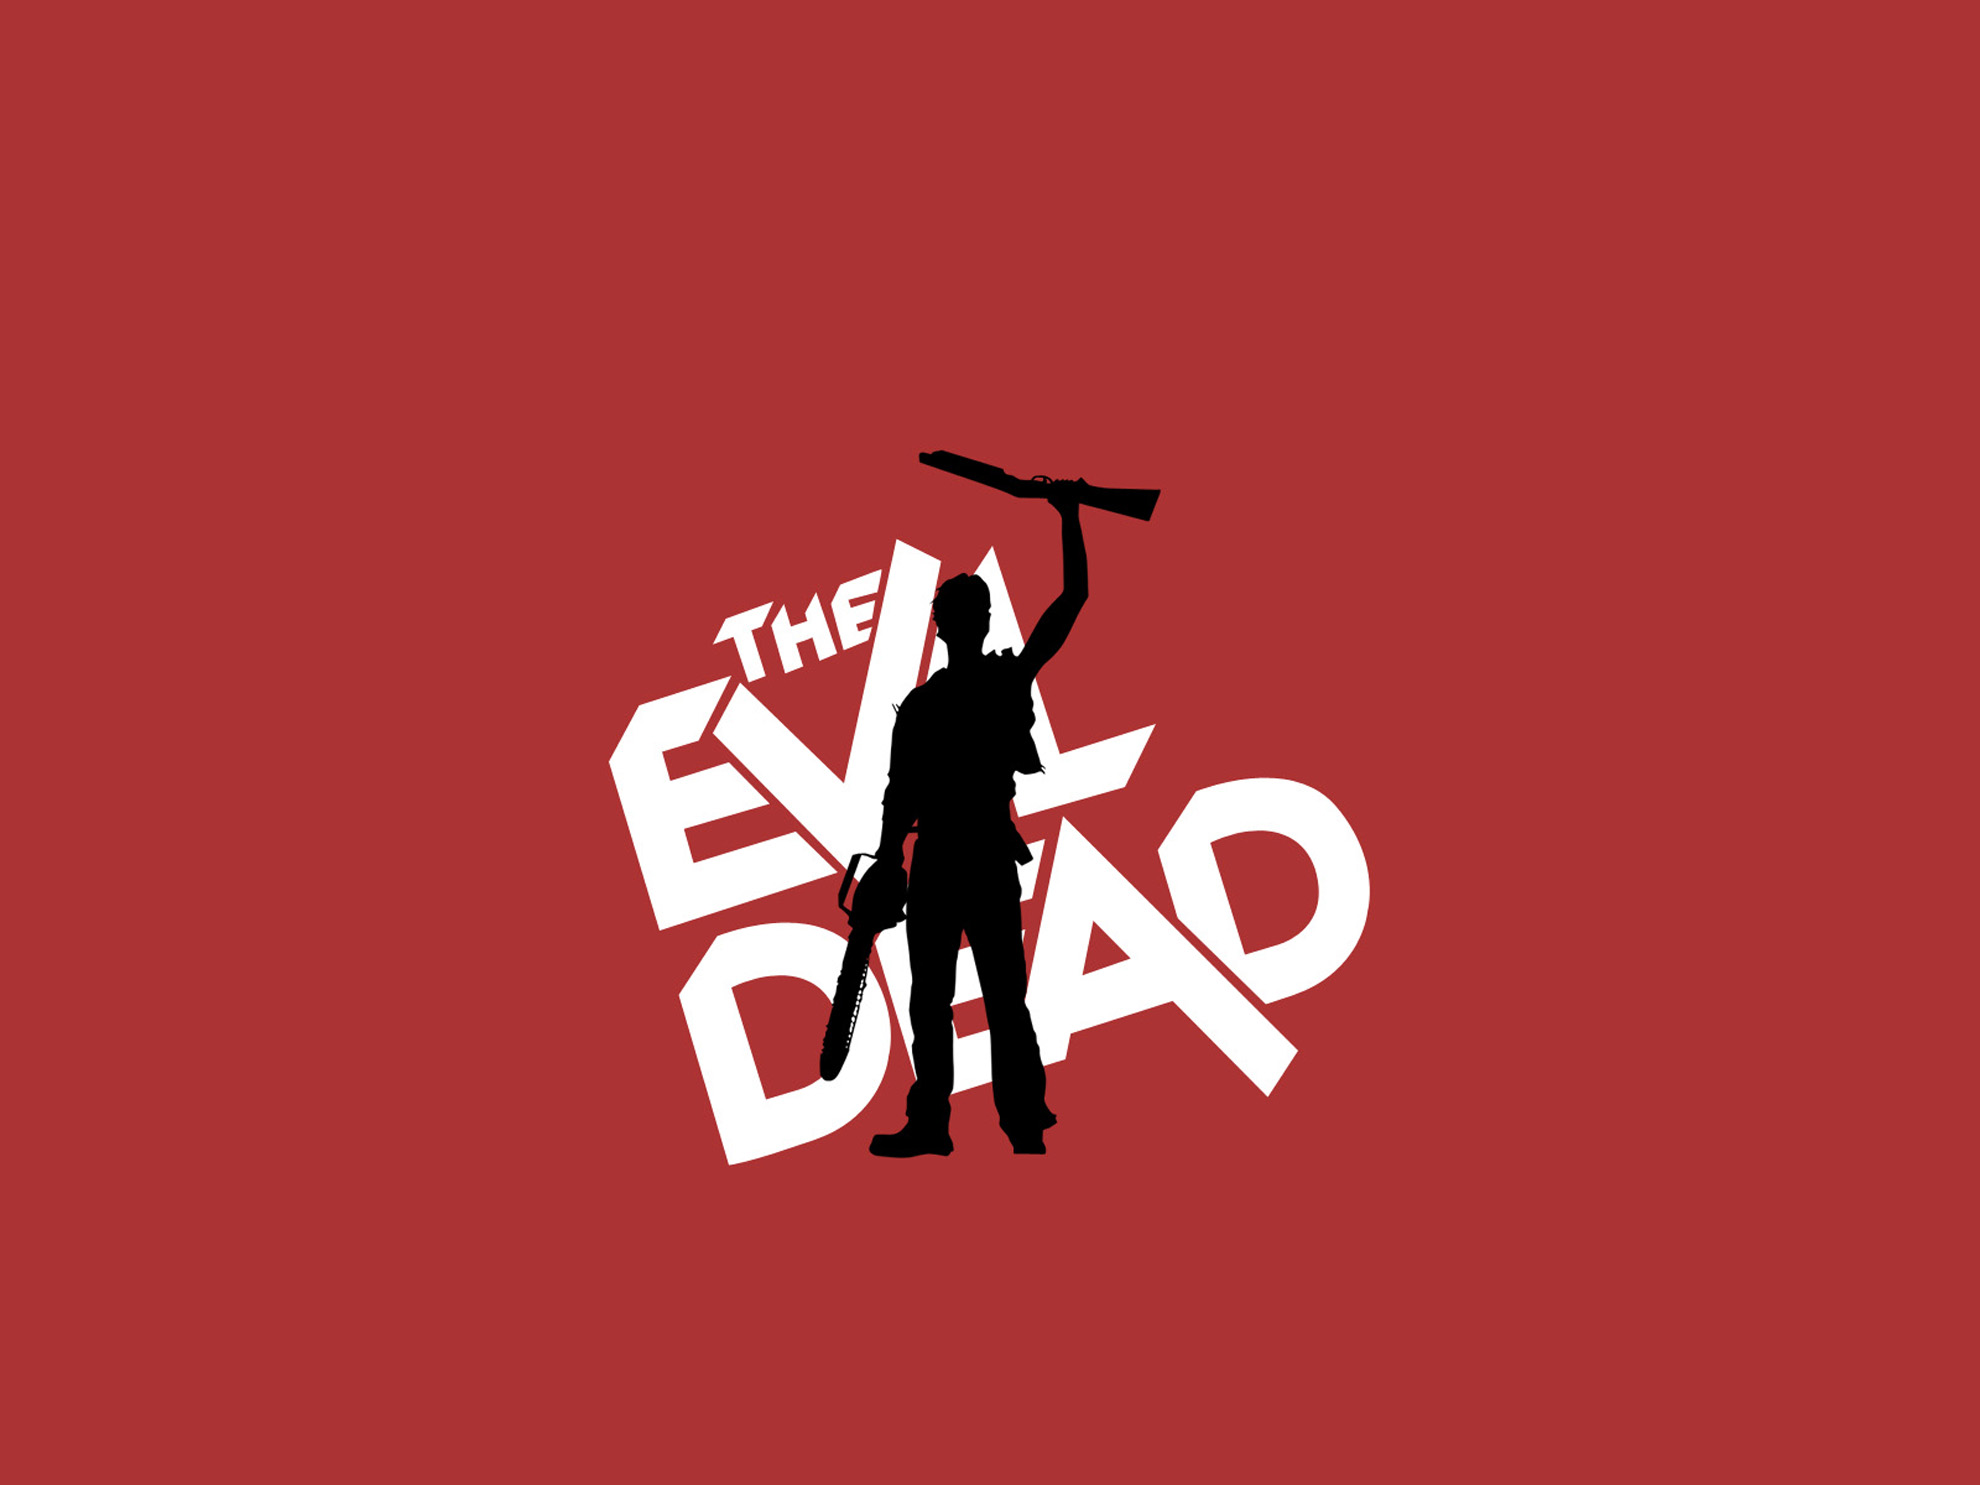 Collection of Evil Dead Wallpaper on HDWallpapers